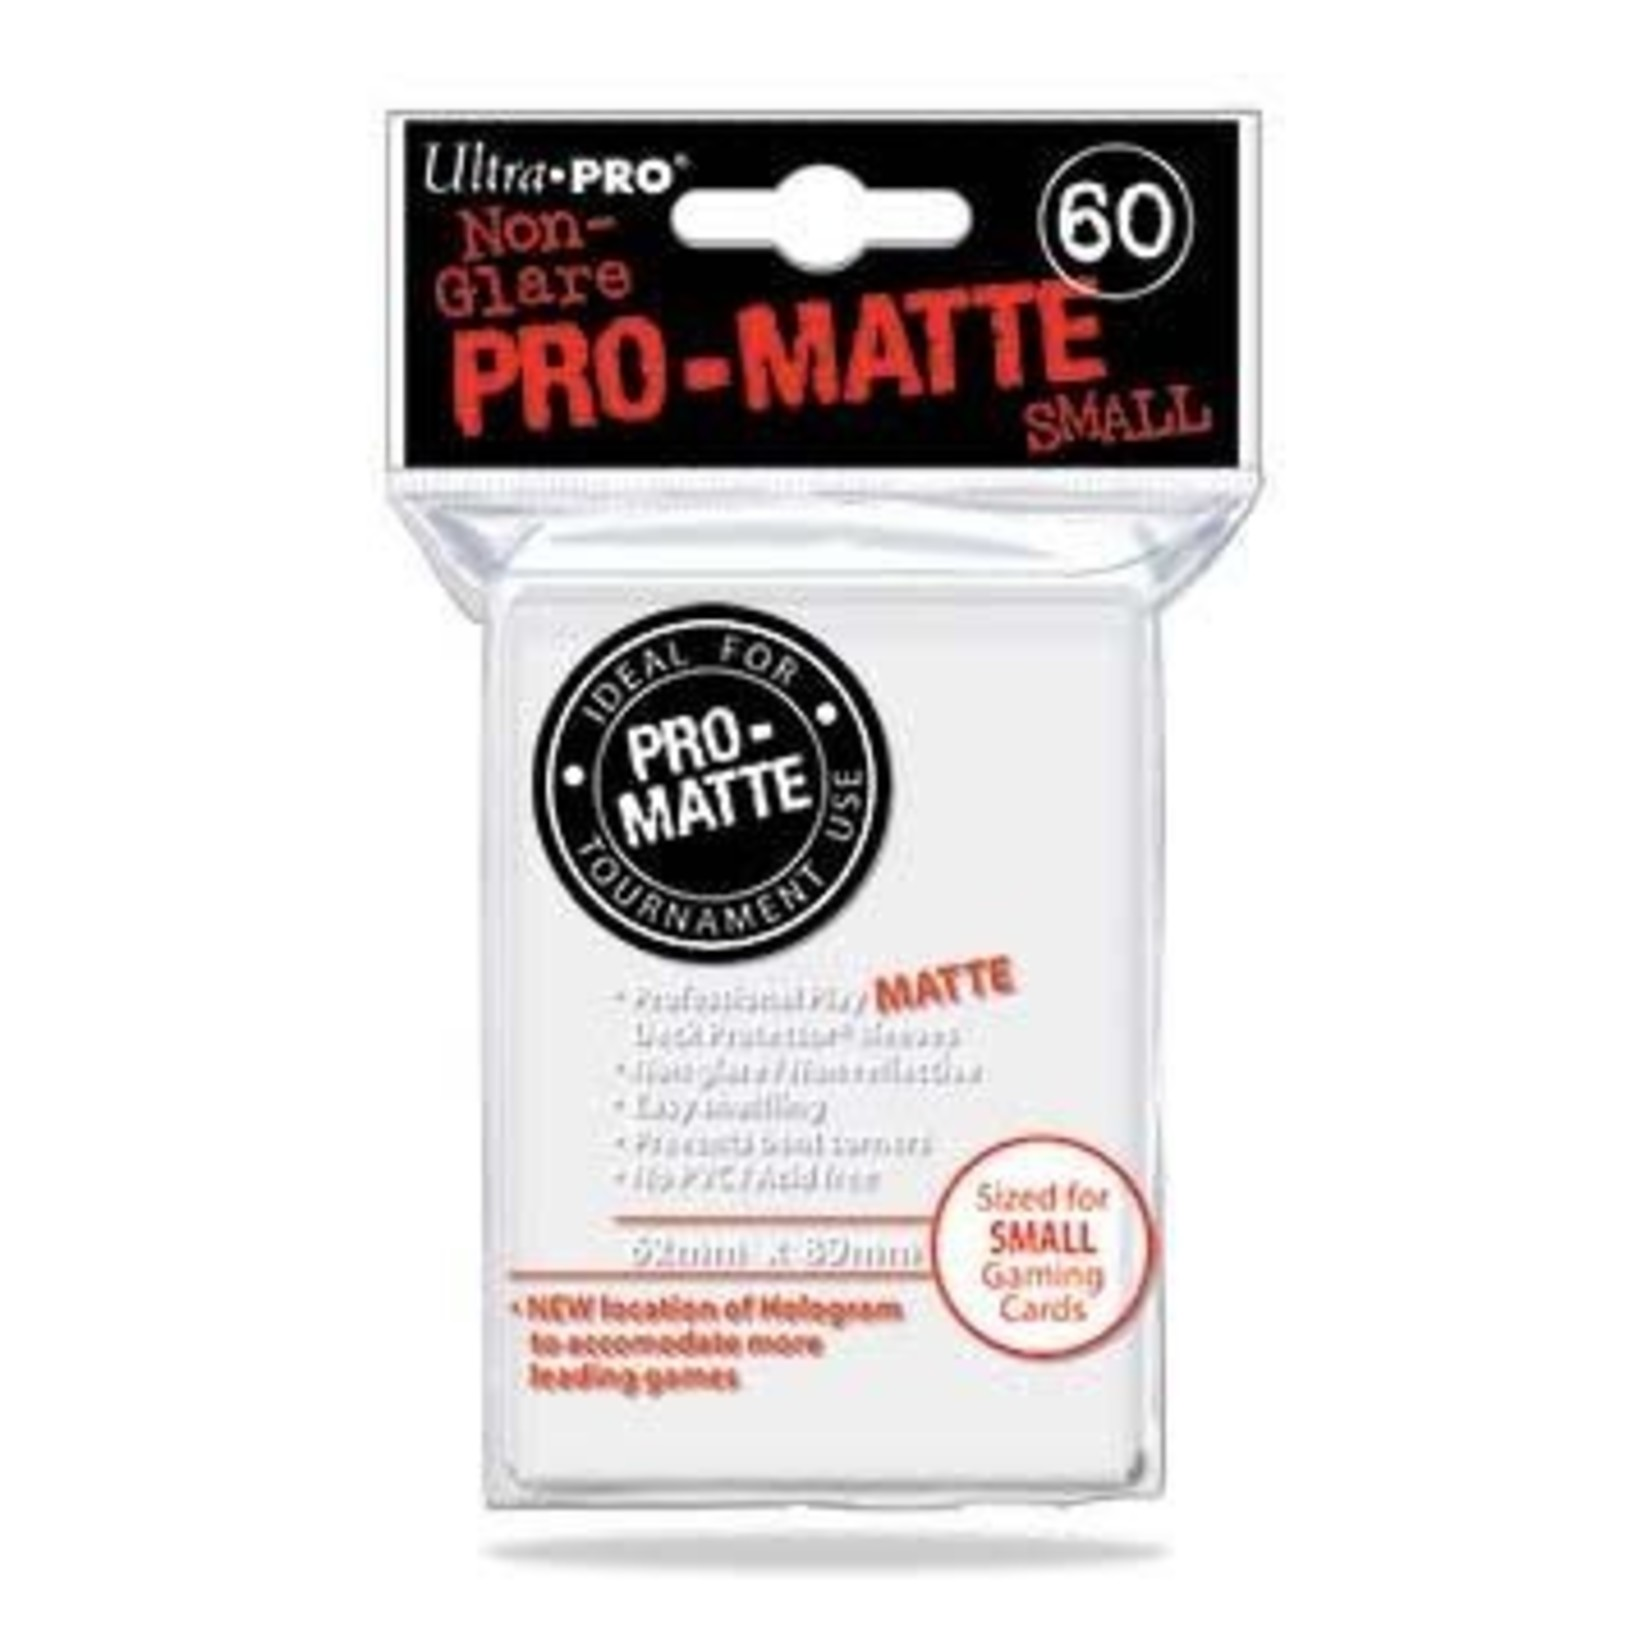 Ultra Pro Matte White (60 count) Small Sleeves